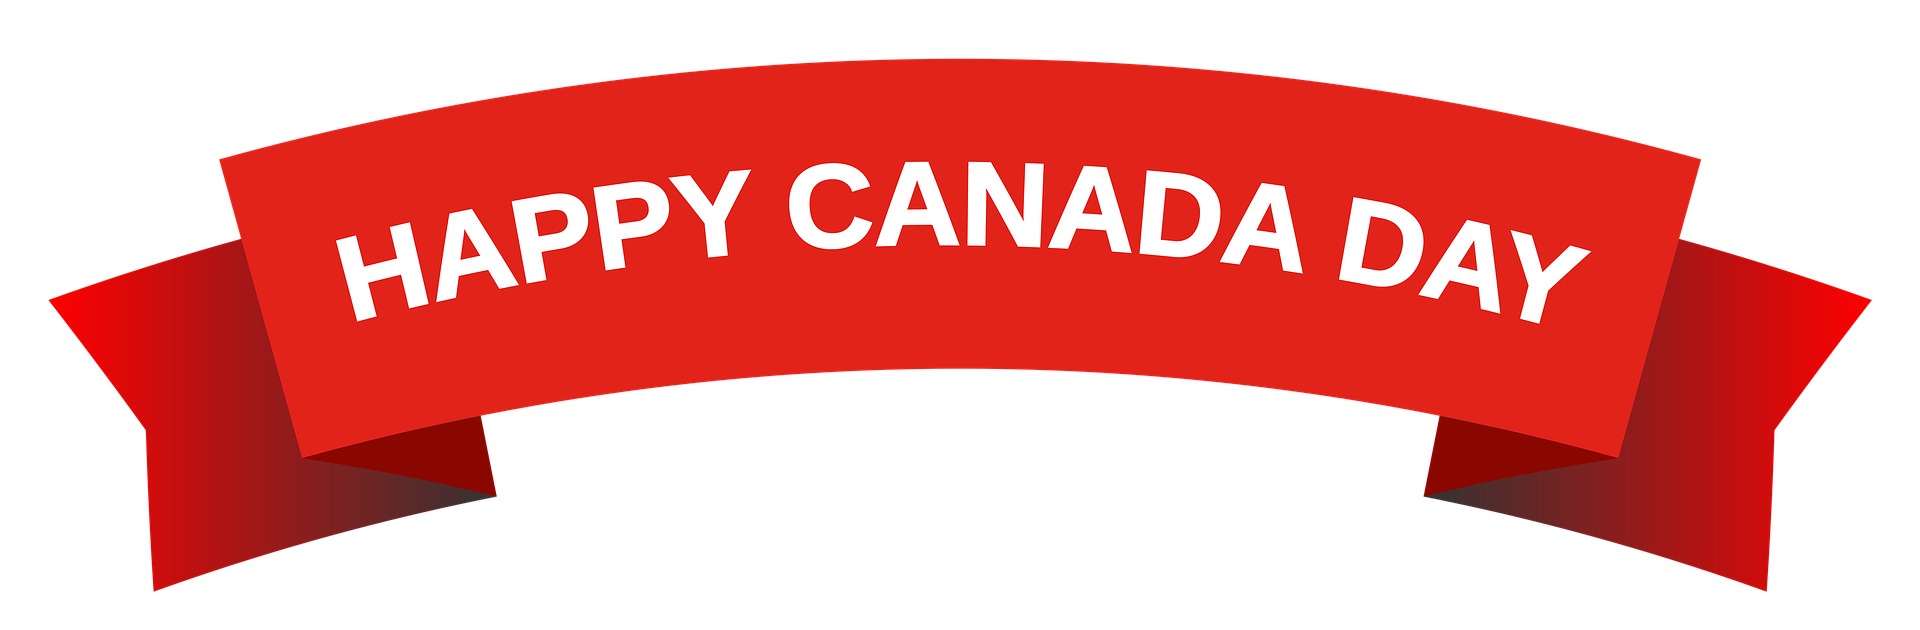 Canada Day Business Innovation